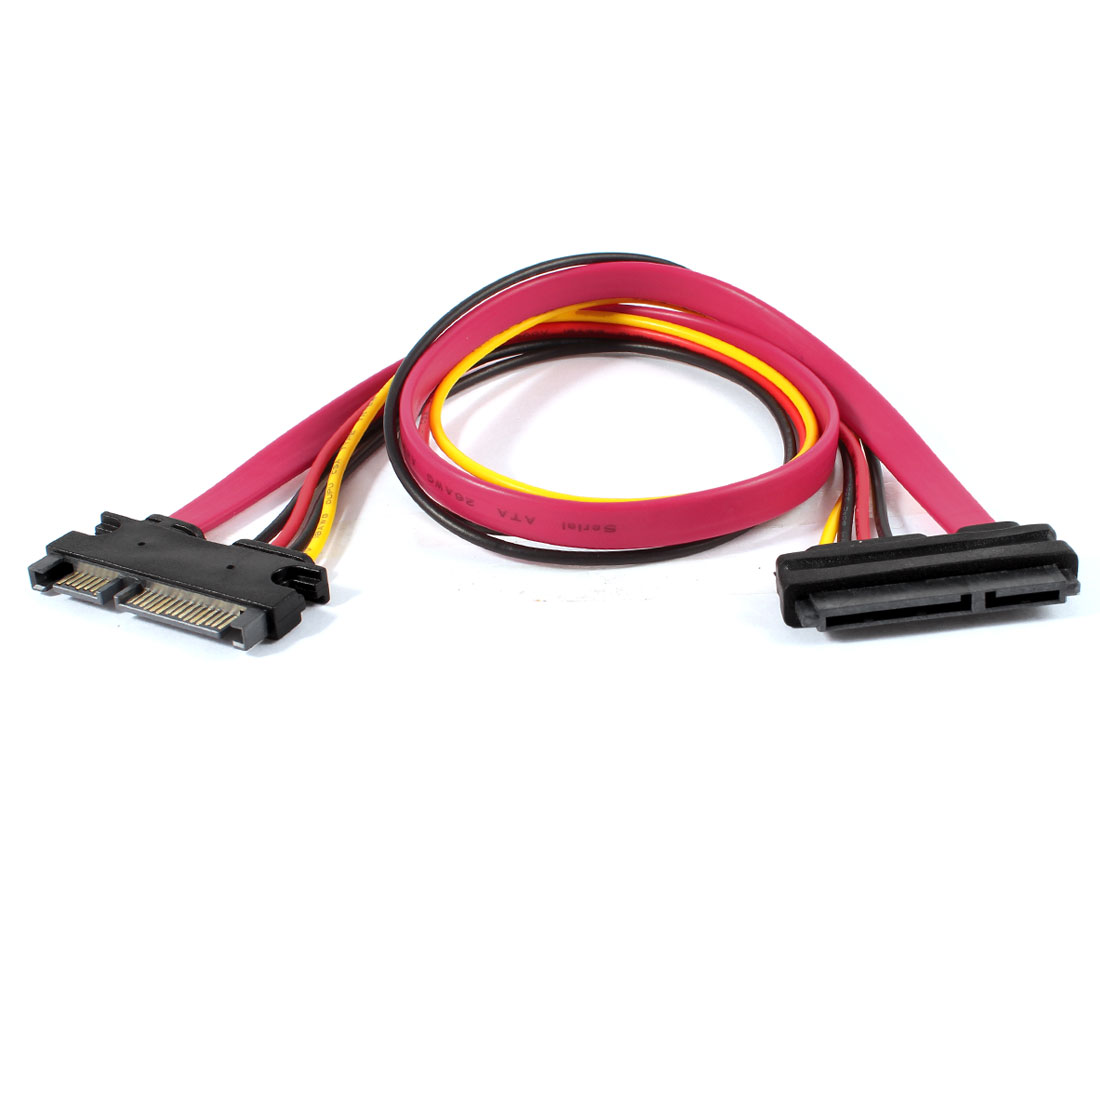 SATA 7+15P Male to SATA 7+15P Female Adapter Y Splitter Power Cable